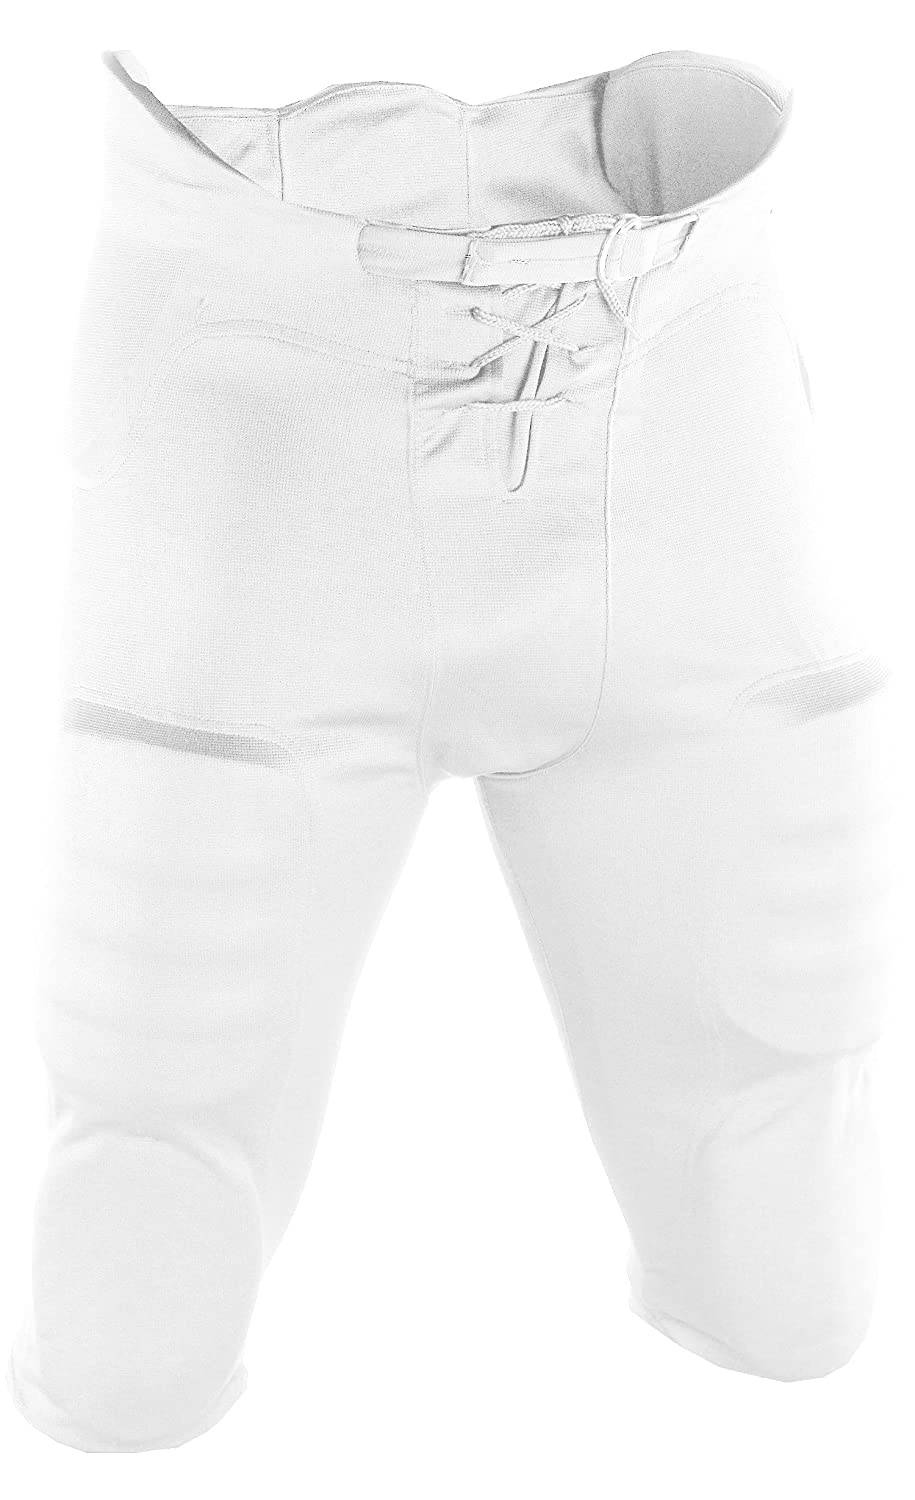 Adams USA Adult Pant Football with Pads FP-882-XL-W-P